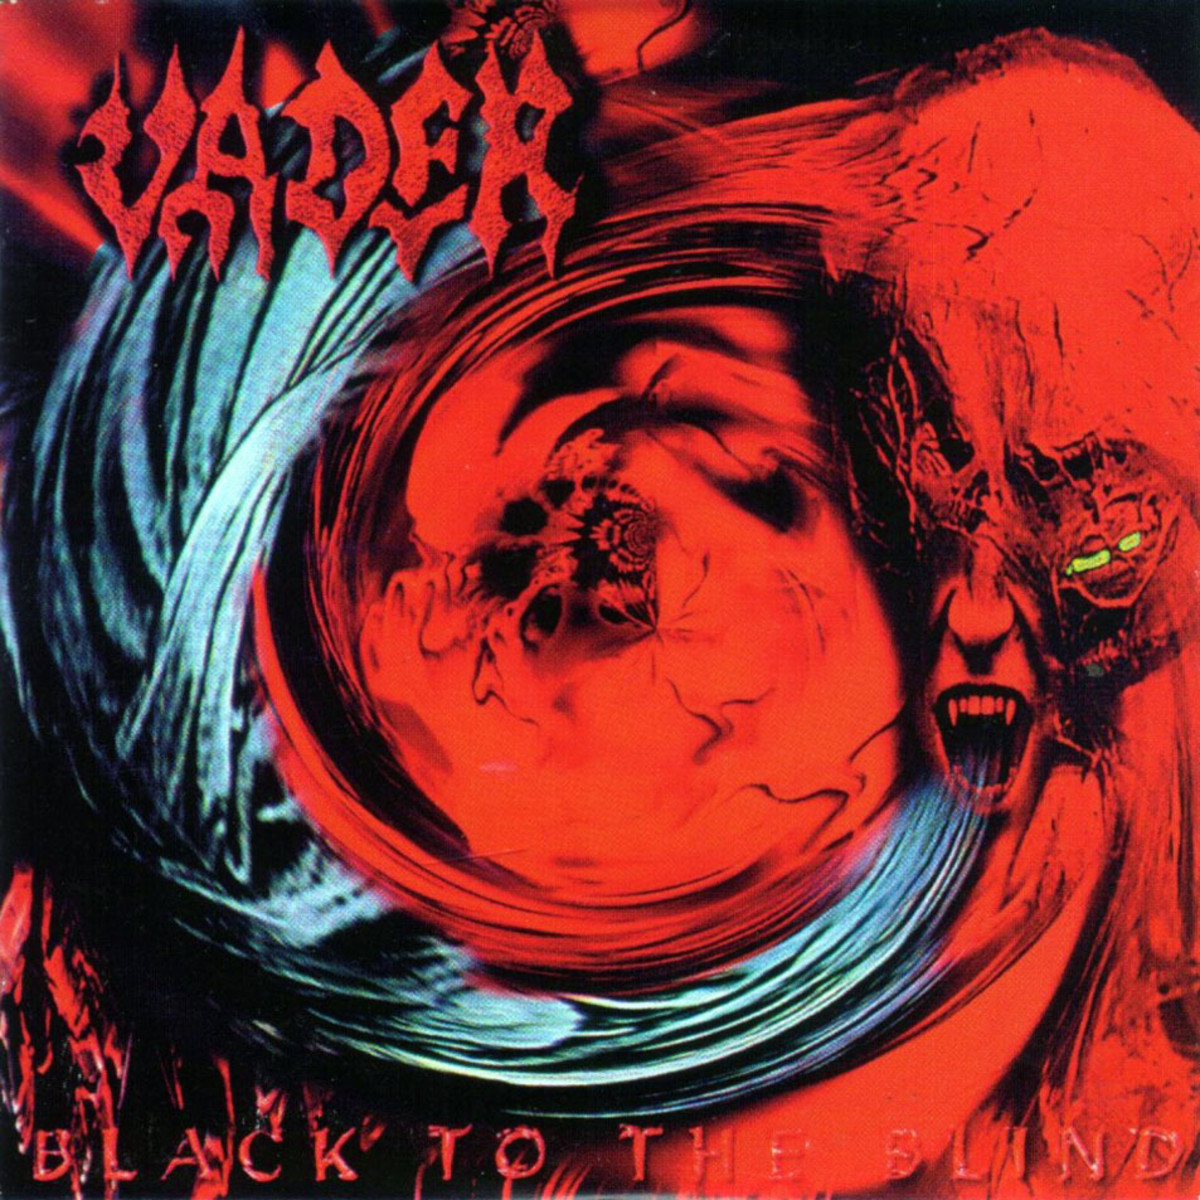 review-of-the-album-black-to-the-blind-by-polish-death-and-thrash-metal-band-vader